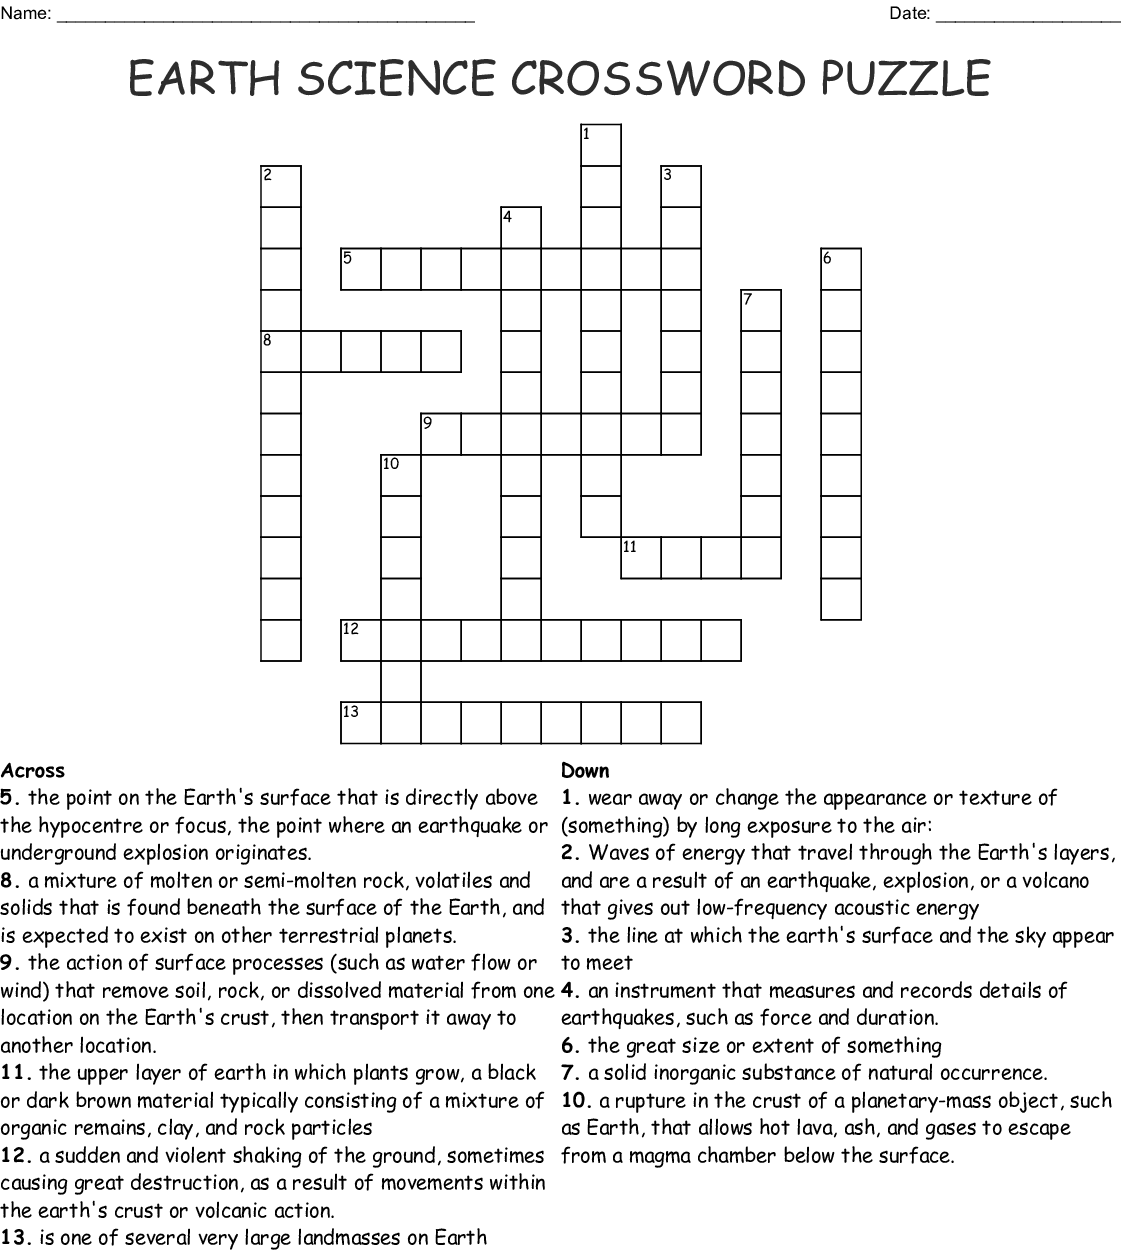 Earth Science Crossword Puzzle